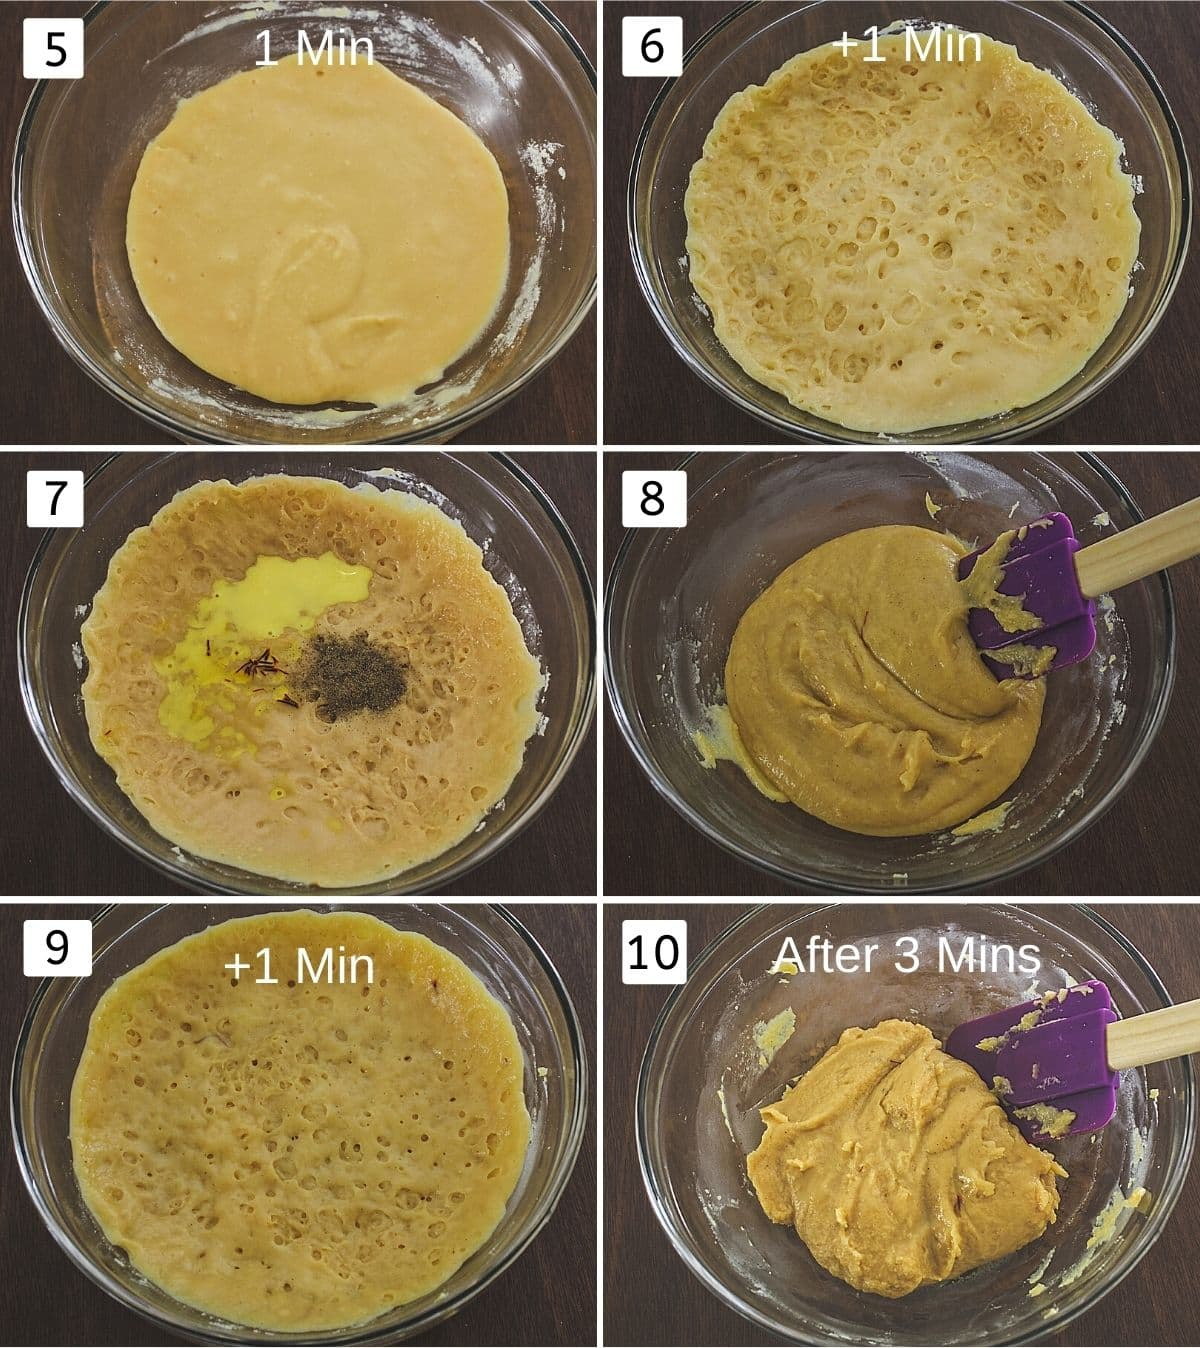 Collage of 6 steps showing peda mixture cooked for 1 min, another 1 min, added saffron-milk, cardamom, mixed, cooked for another 1 min, ready mixture